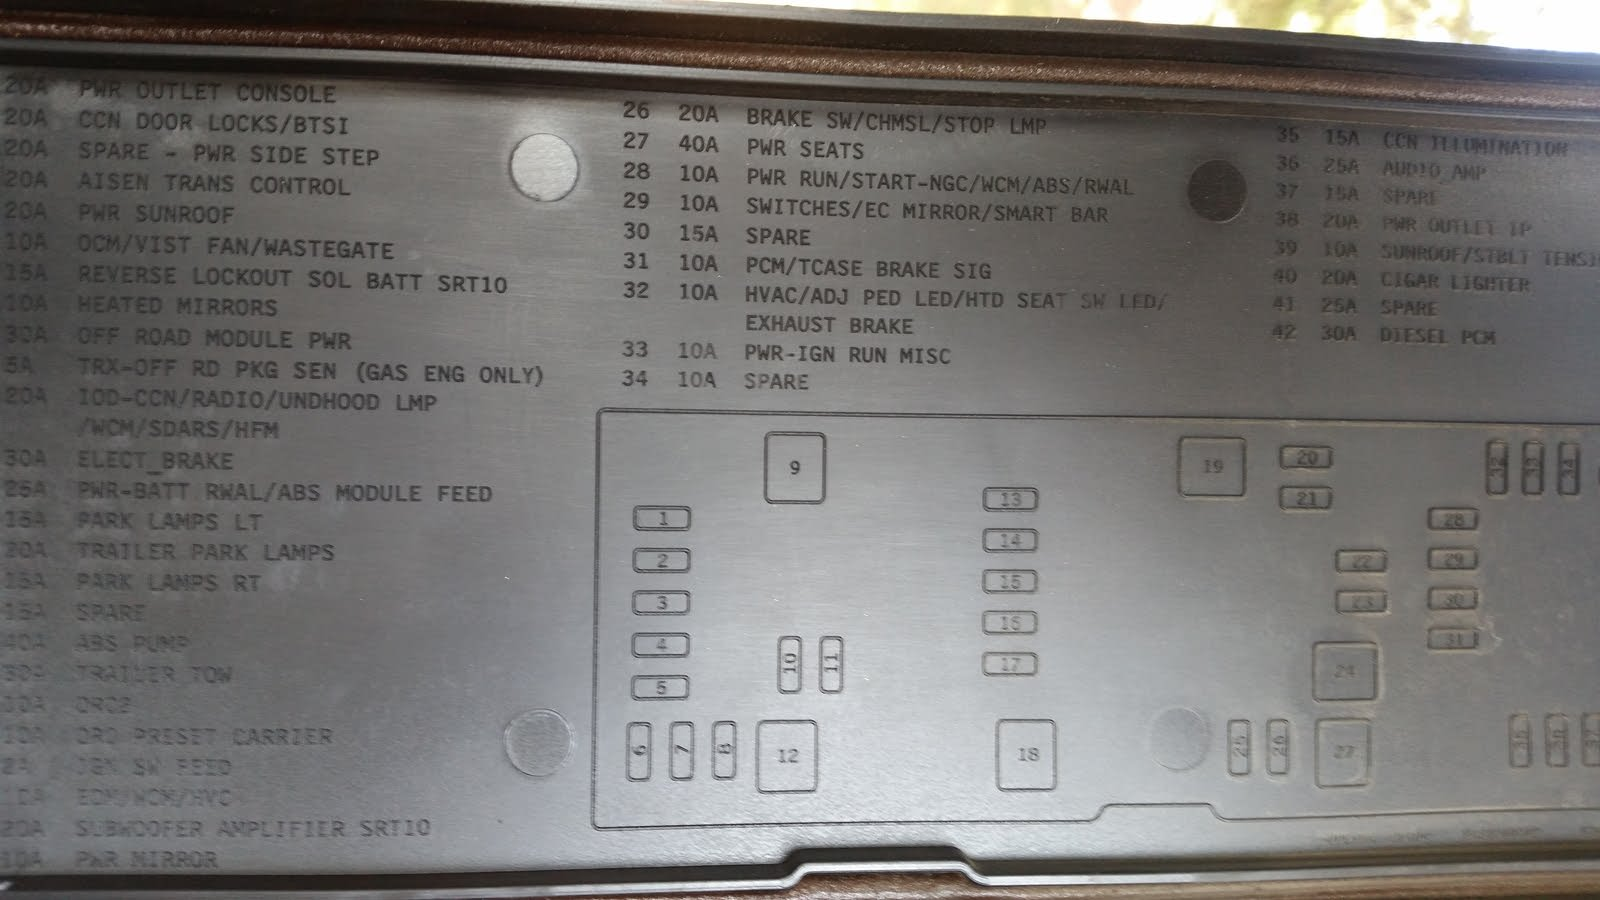 [SCHEMATICS_4JK]  Dodge RAM 1500 Questions - where is my fuel pump relay located for a 2006 Dodge  Ram 1500 Mega Cab... - CarGurus | 2007 Ram 1500 Fuse Box |  | CarGurus